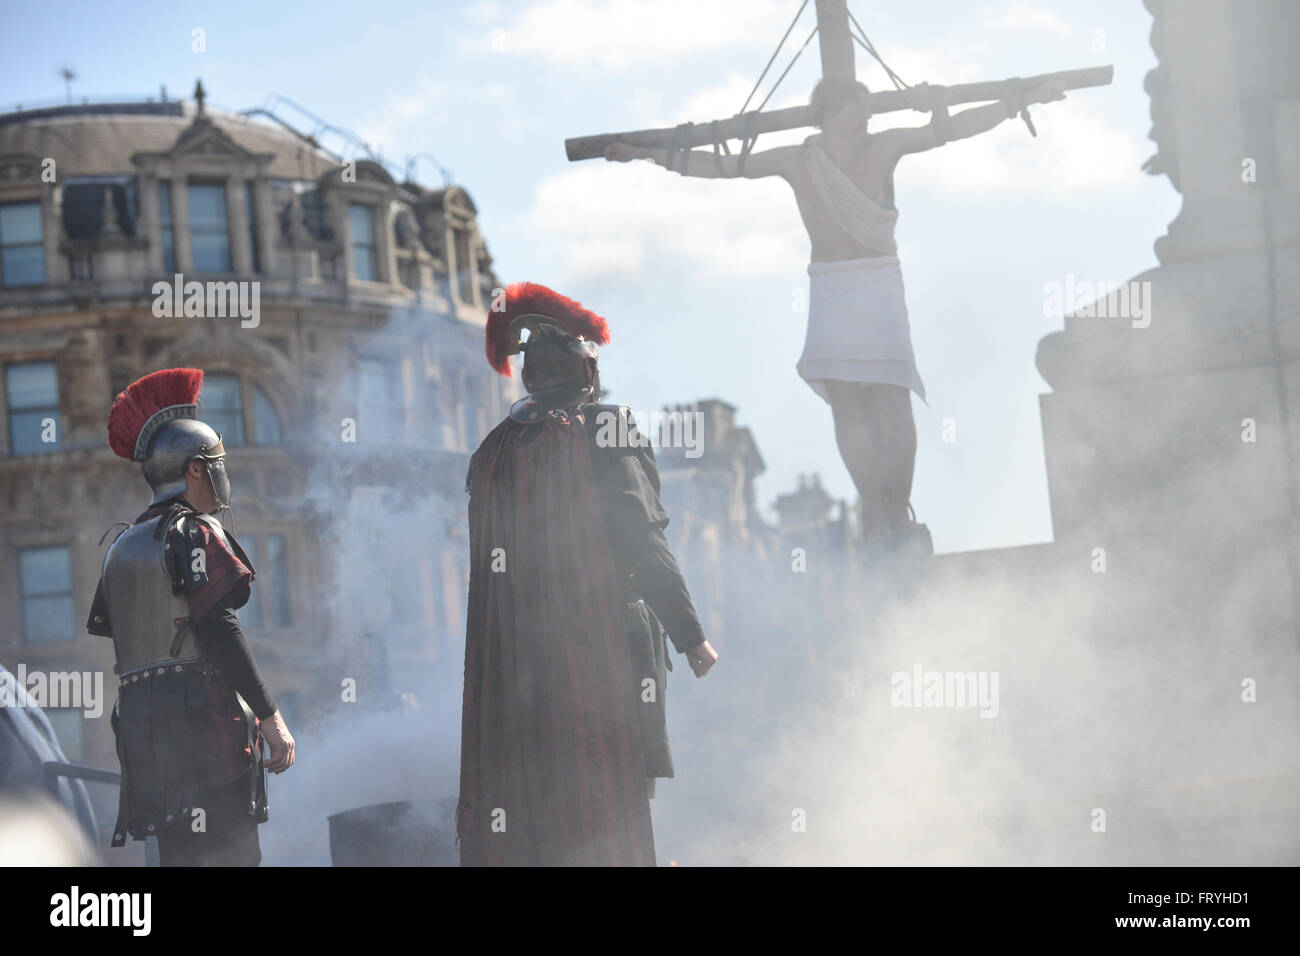 Trafalgar Square, London, UK. 25th March 2016. The Passion of Jesus is performed in Trafalgar Square for Good Friday. Stock Photo